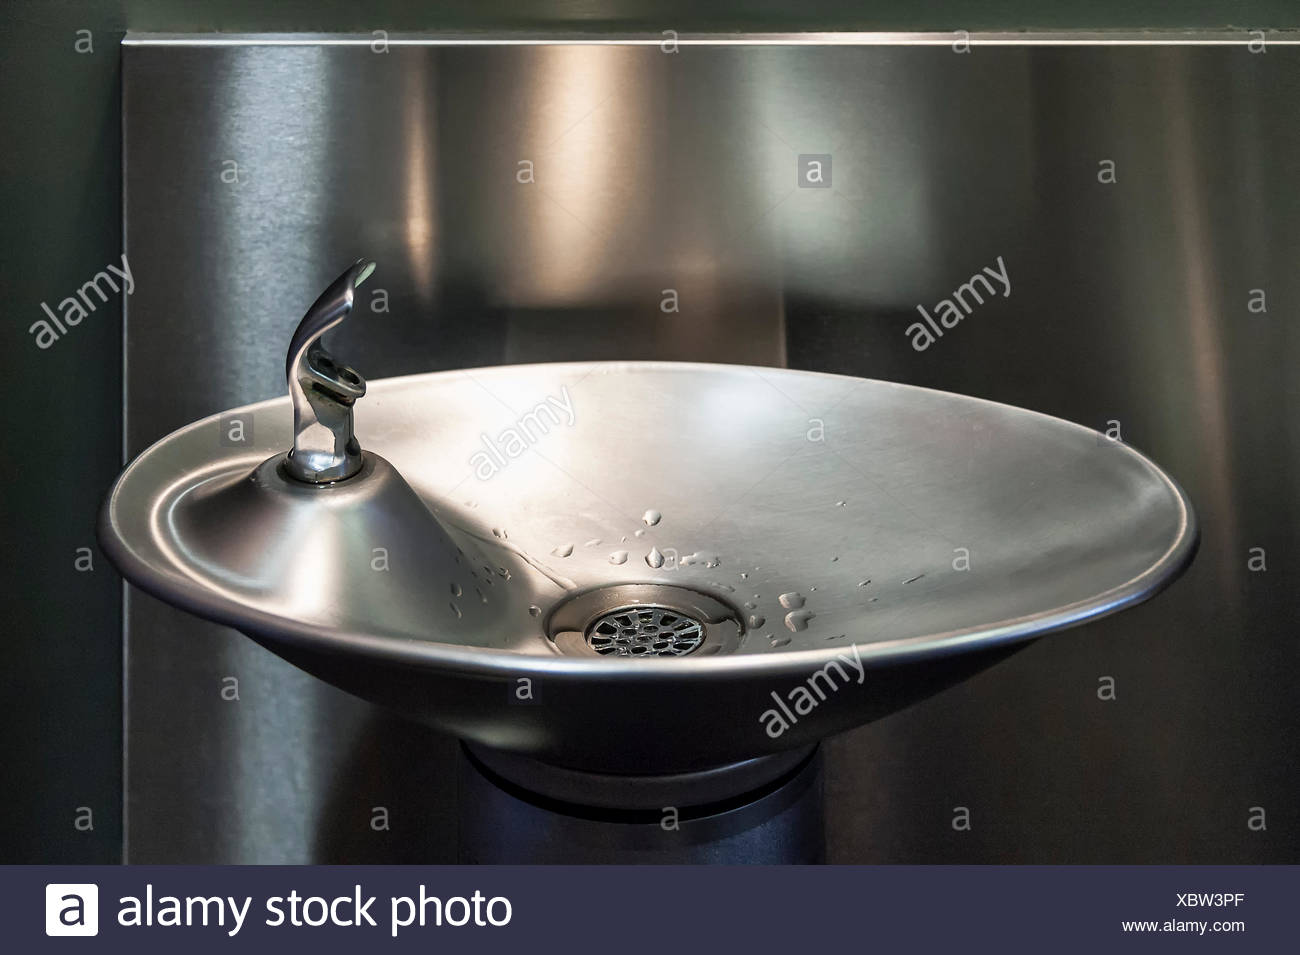 Modern design water fountain. - Stock Image